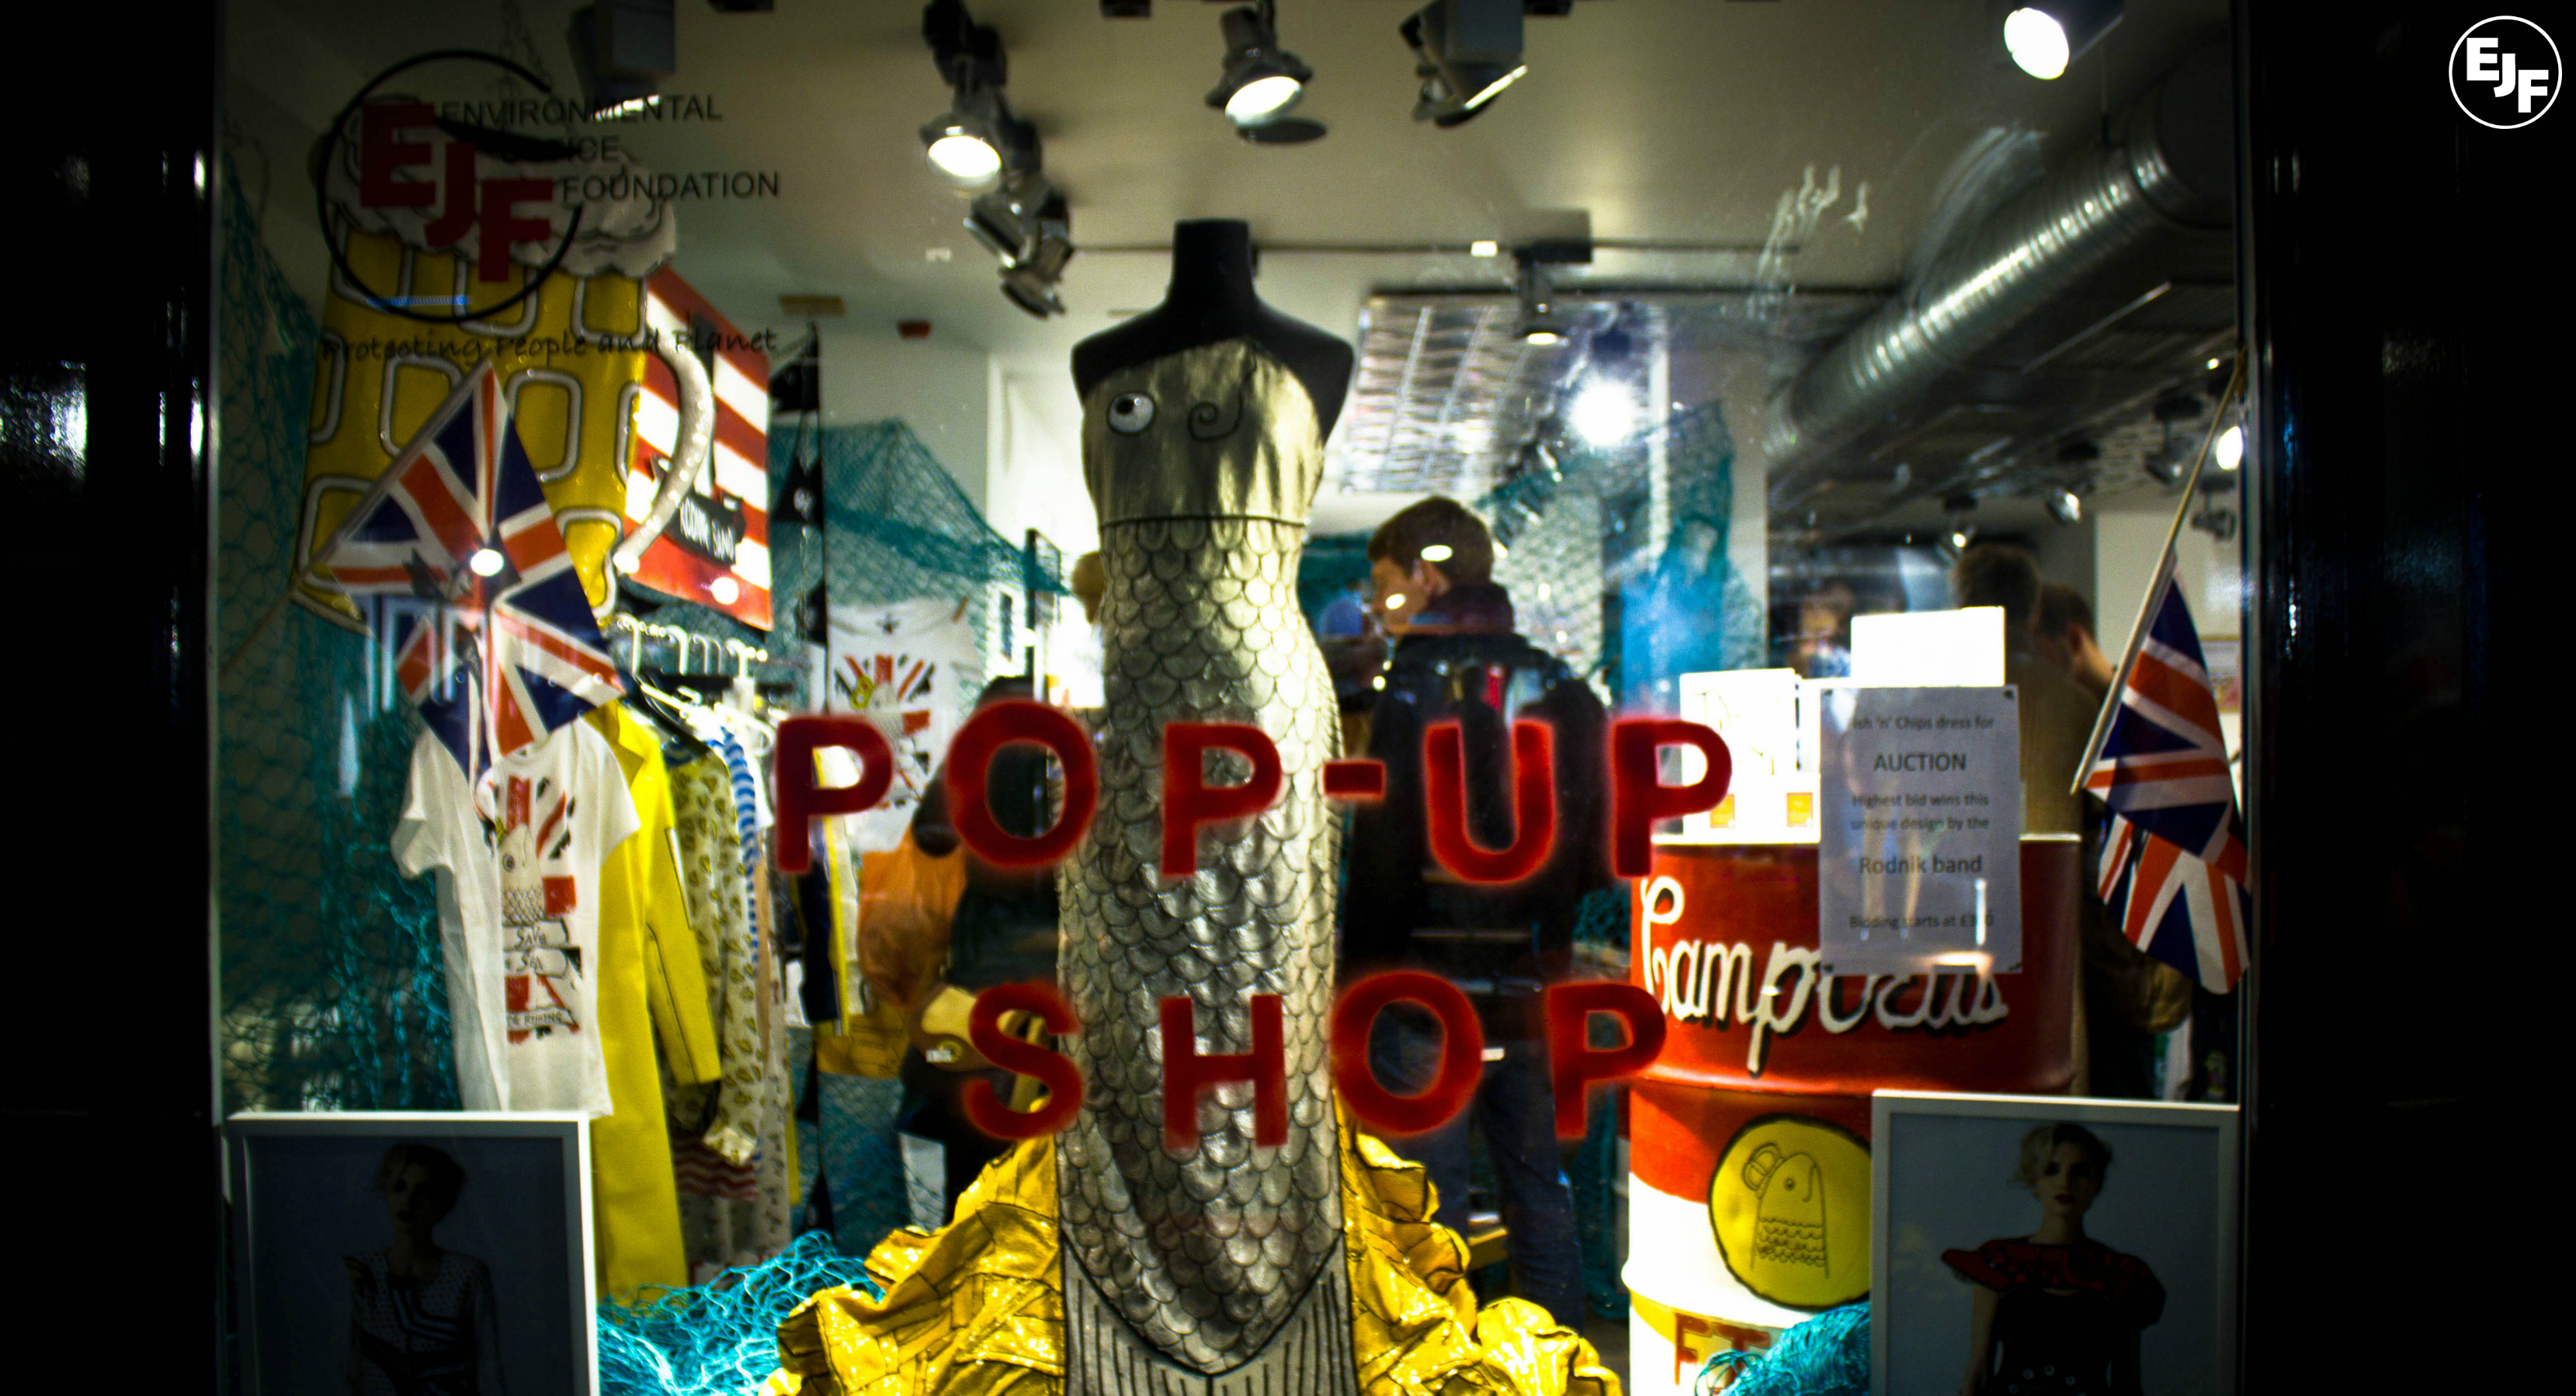 Ethical fashion launch party at EJF's Pop Up Shop